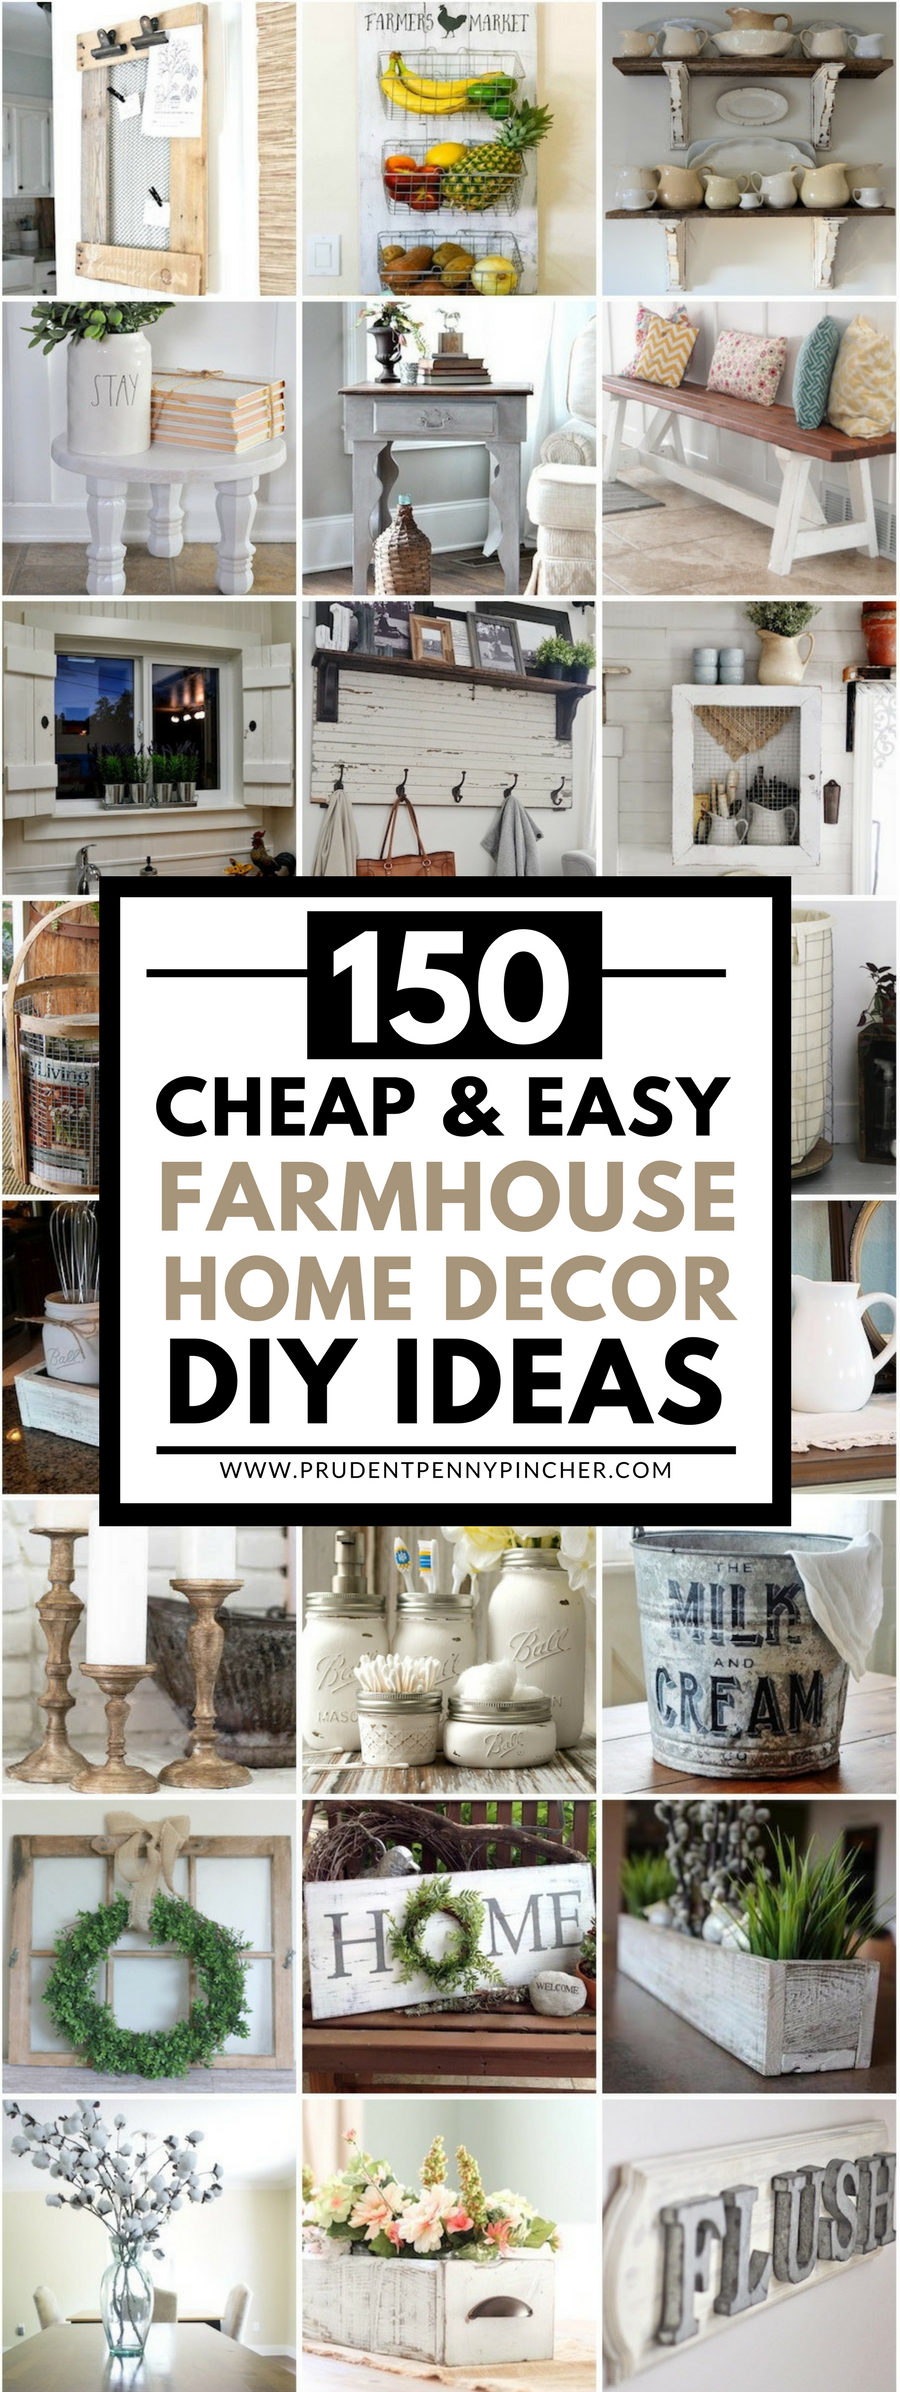 Home And Decor Ideas Of 150 Cheap And Easy Diy Farmhouse Style Home Decor Ideas